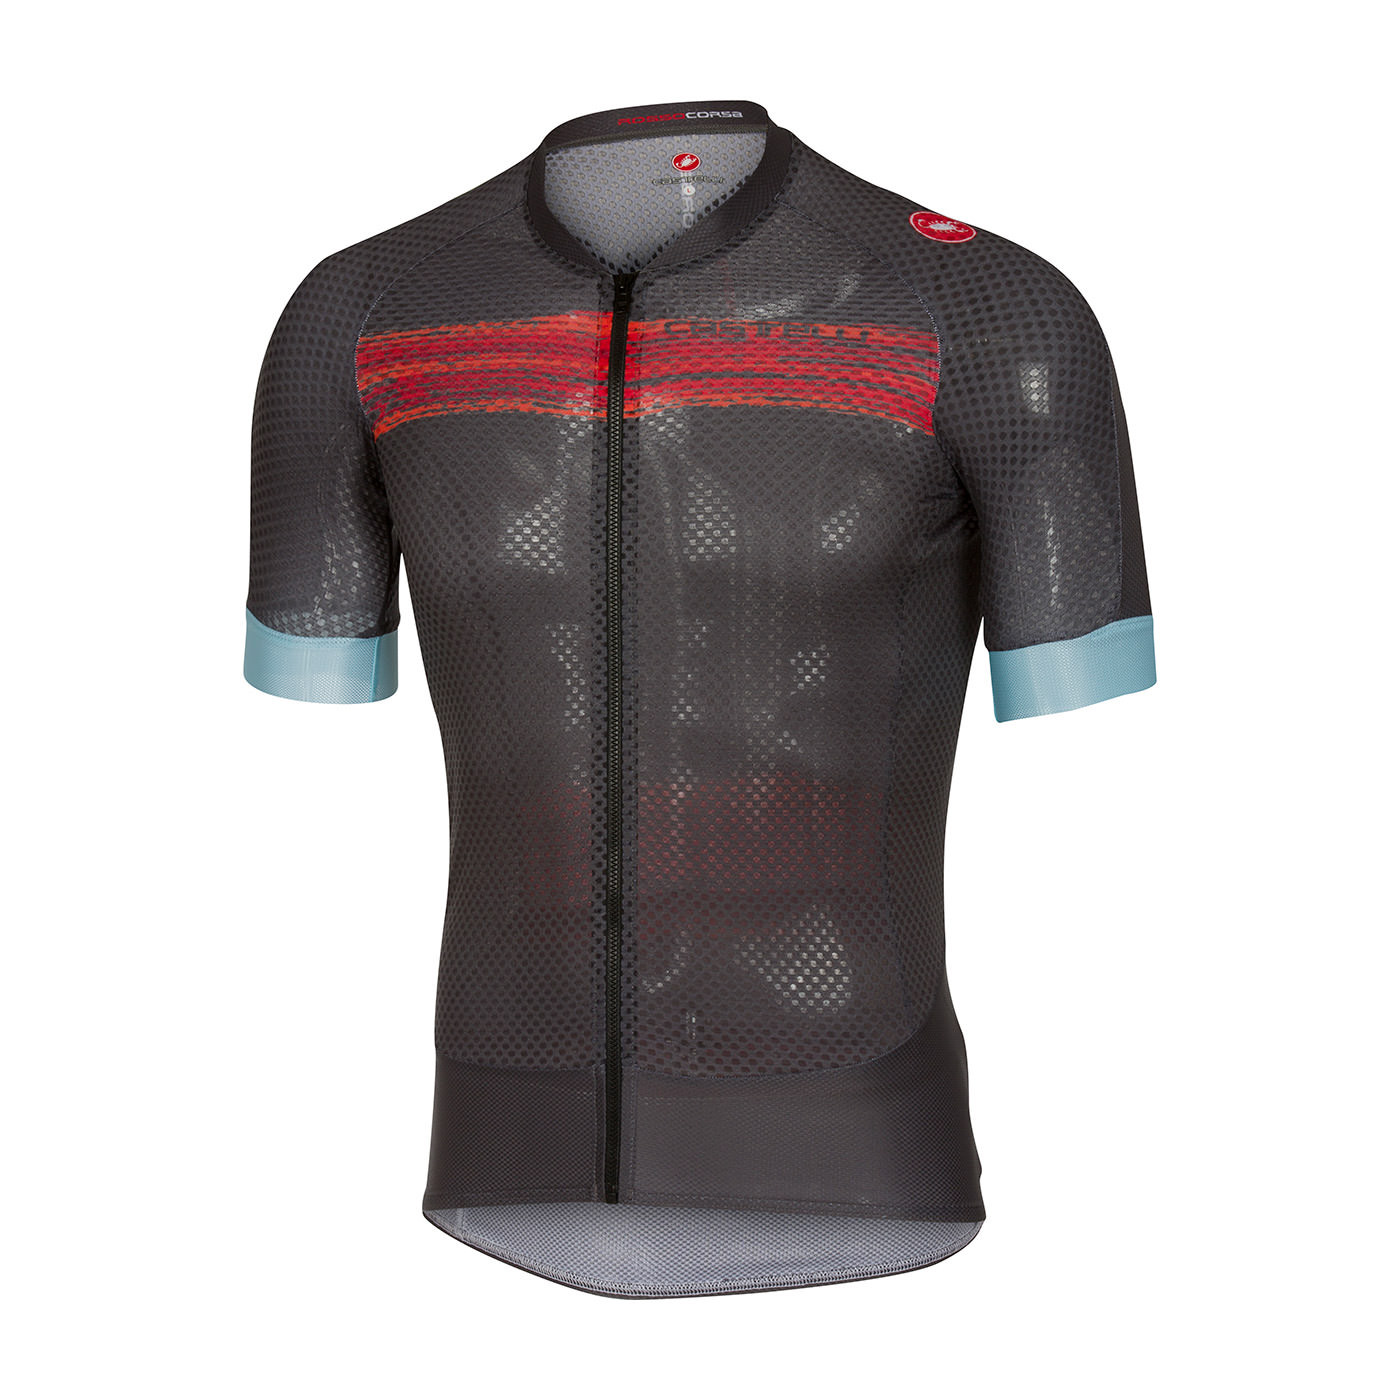 Maillot Castelli climber's 2.0